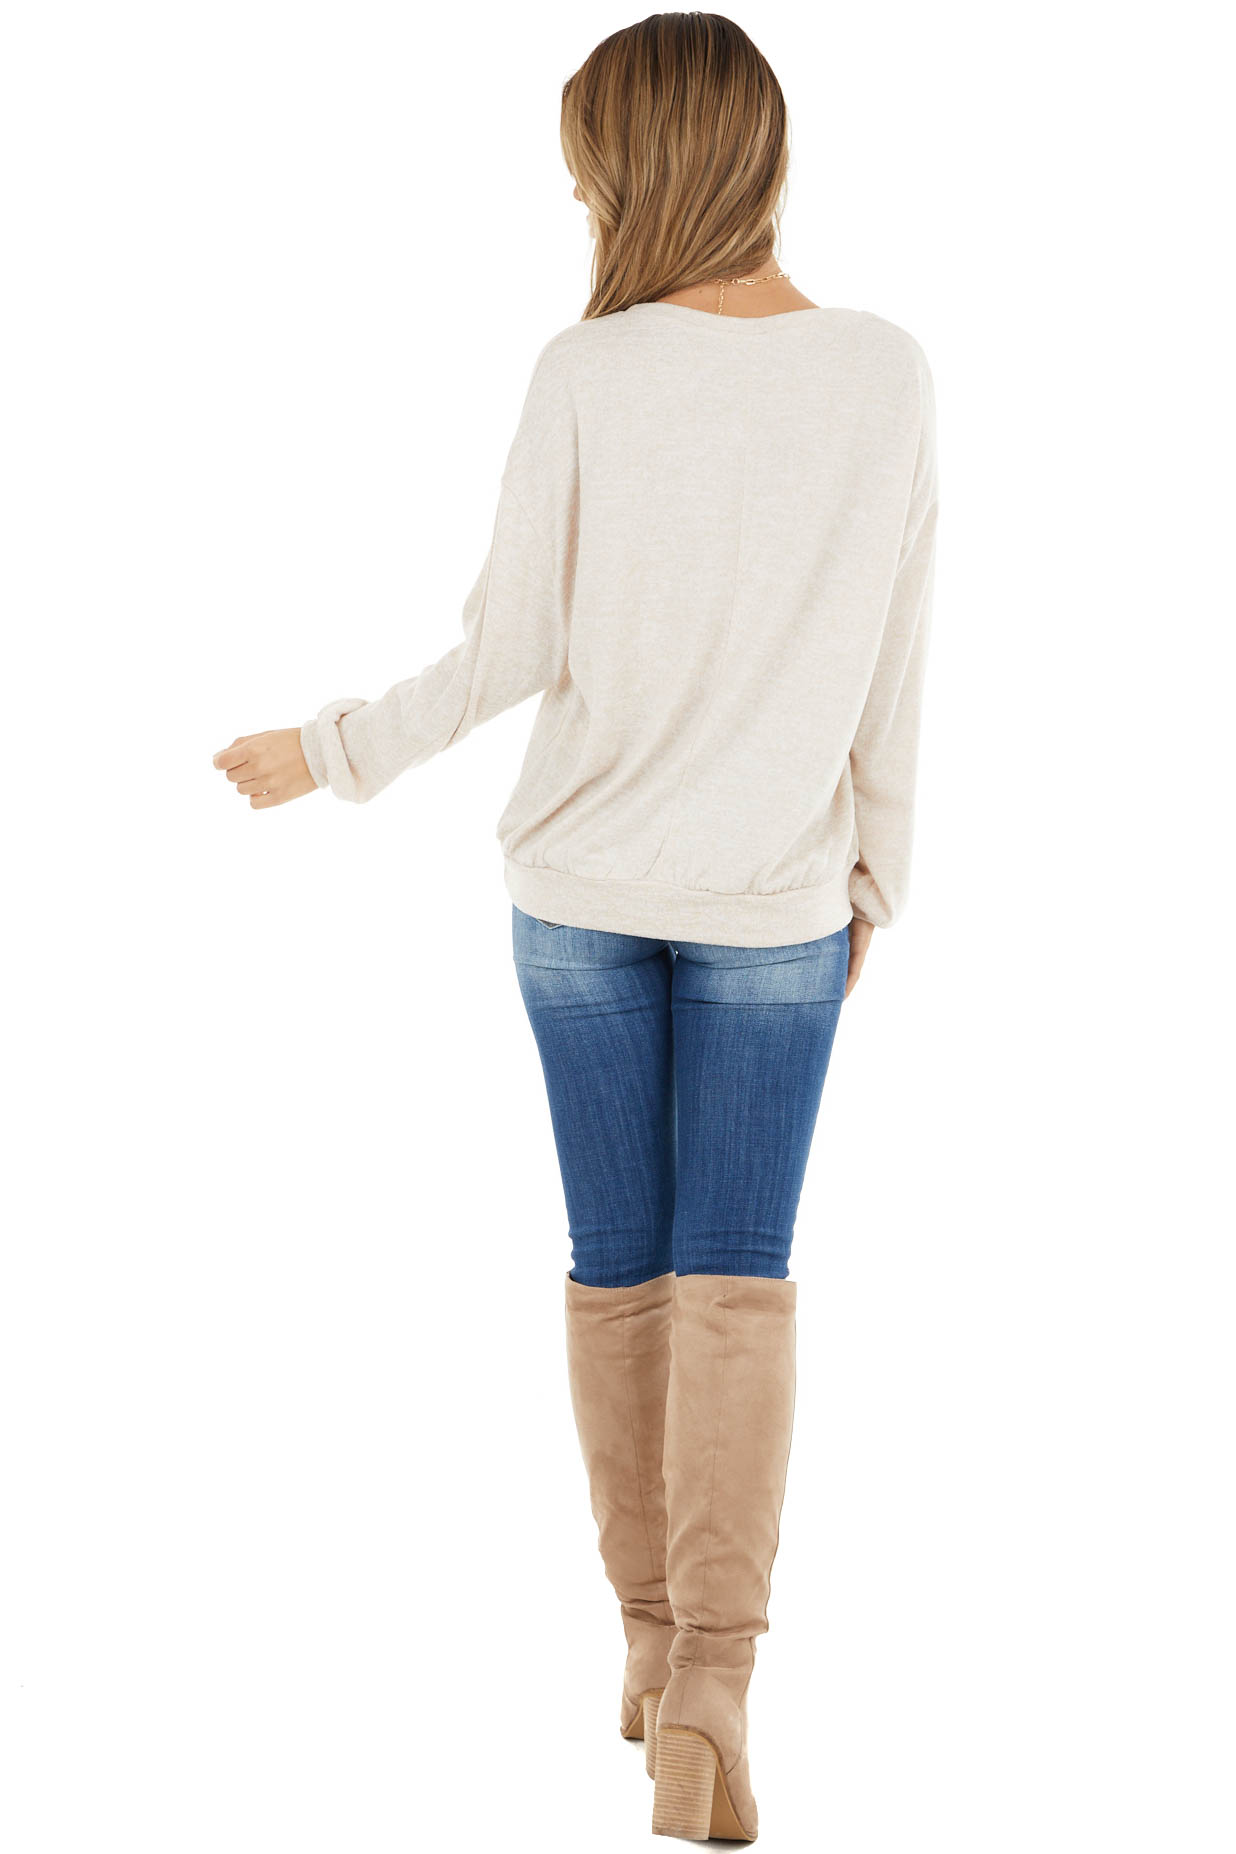 Sand V Stitch Stretchy Knit Top with Bubble Sleeves